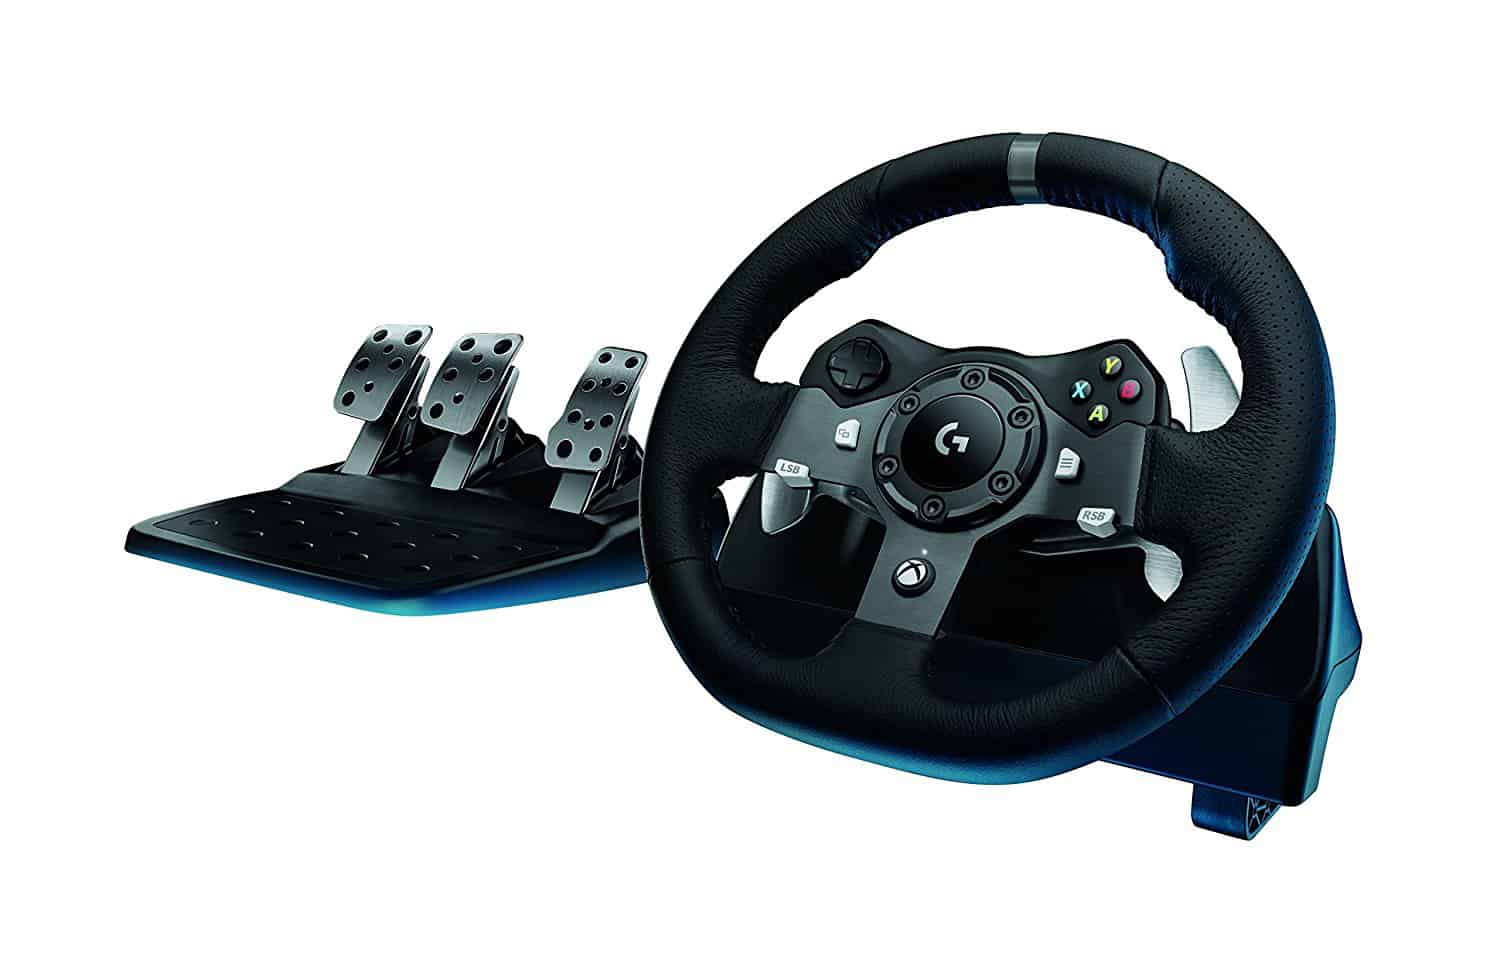 Logitech G920 driving force racing wheel - Logitech G920 review